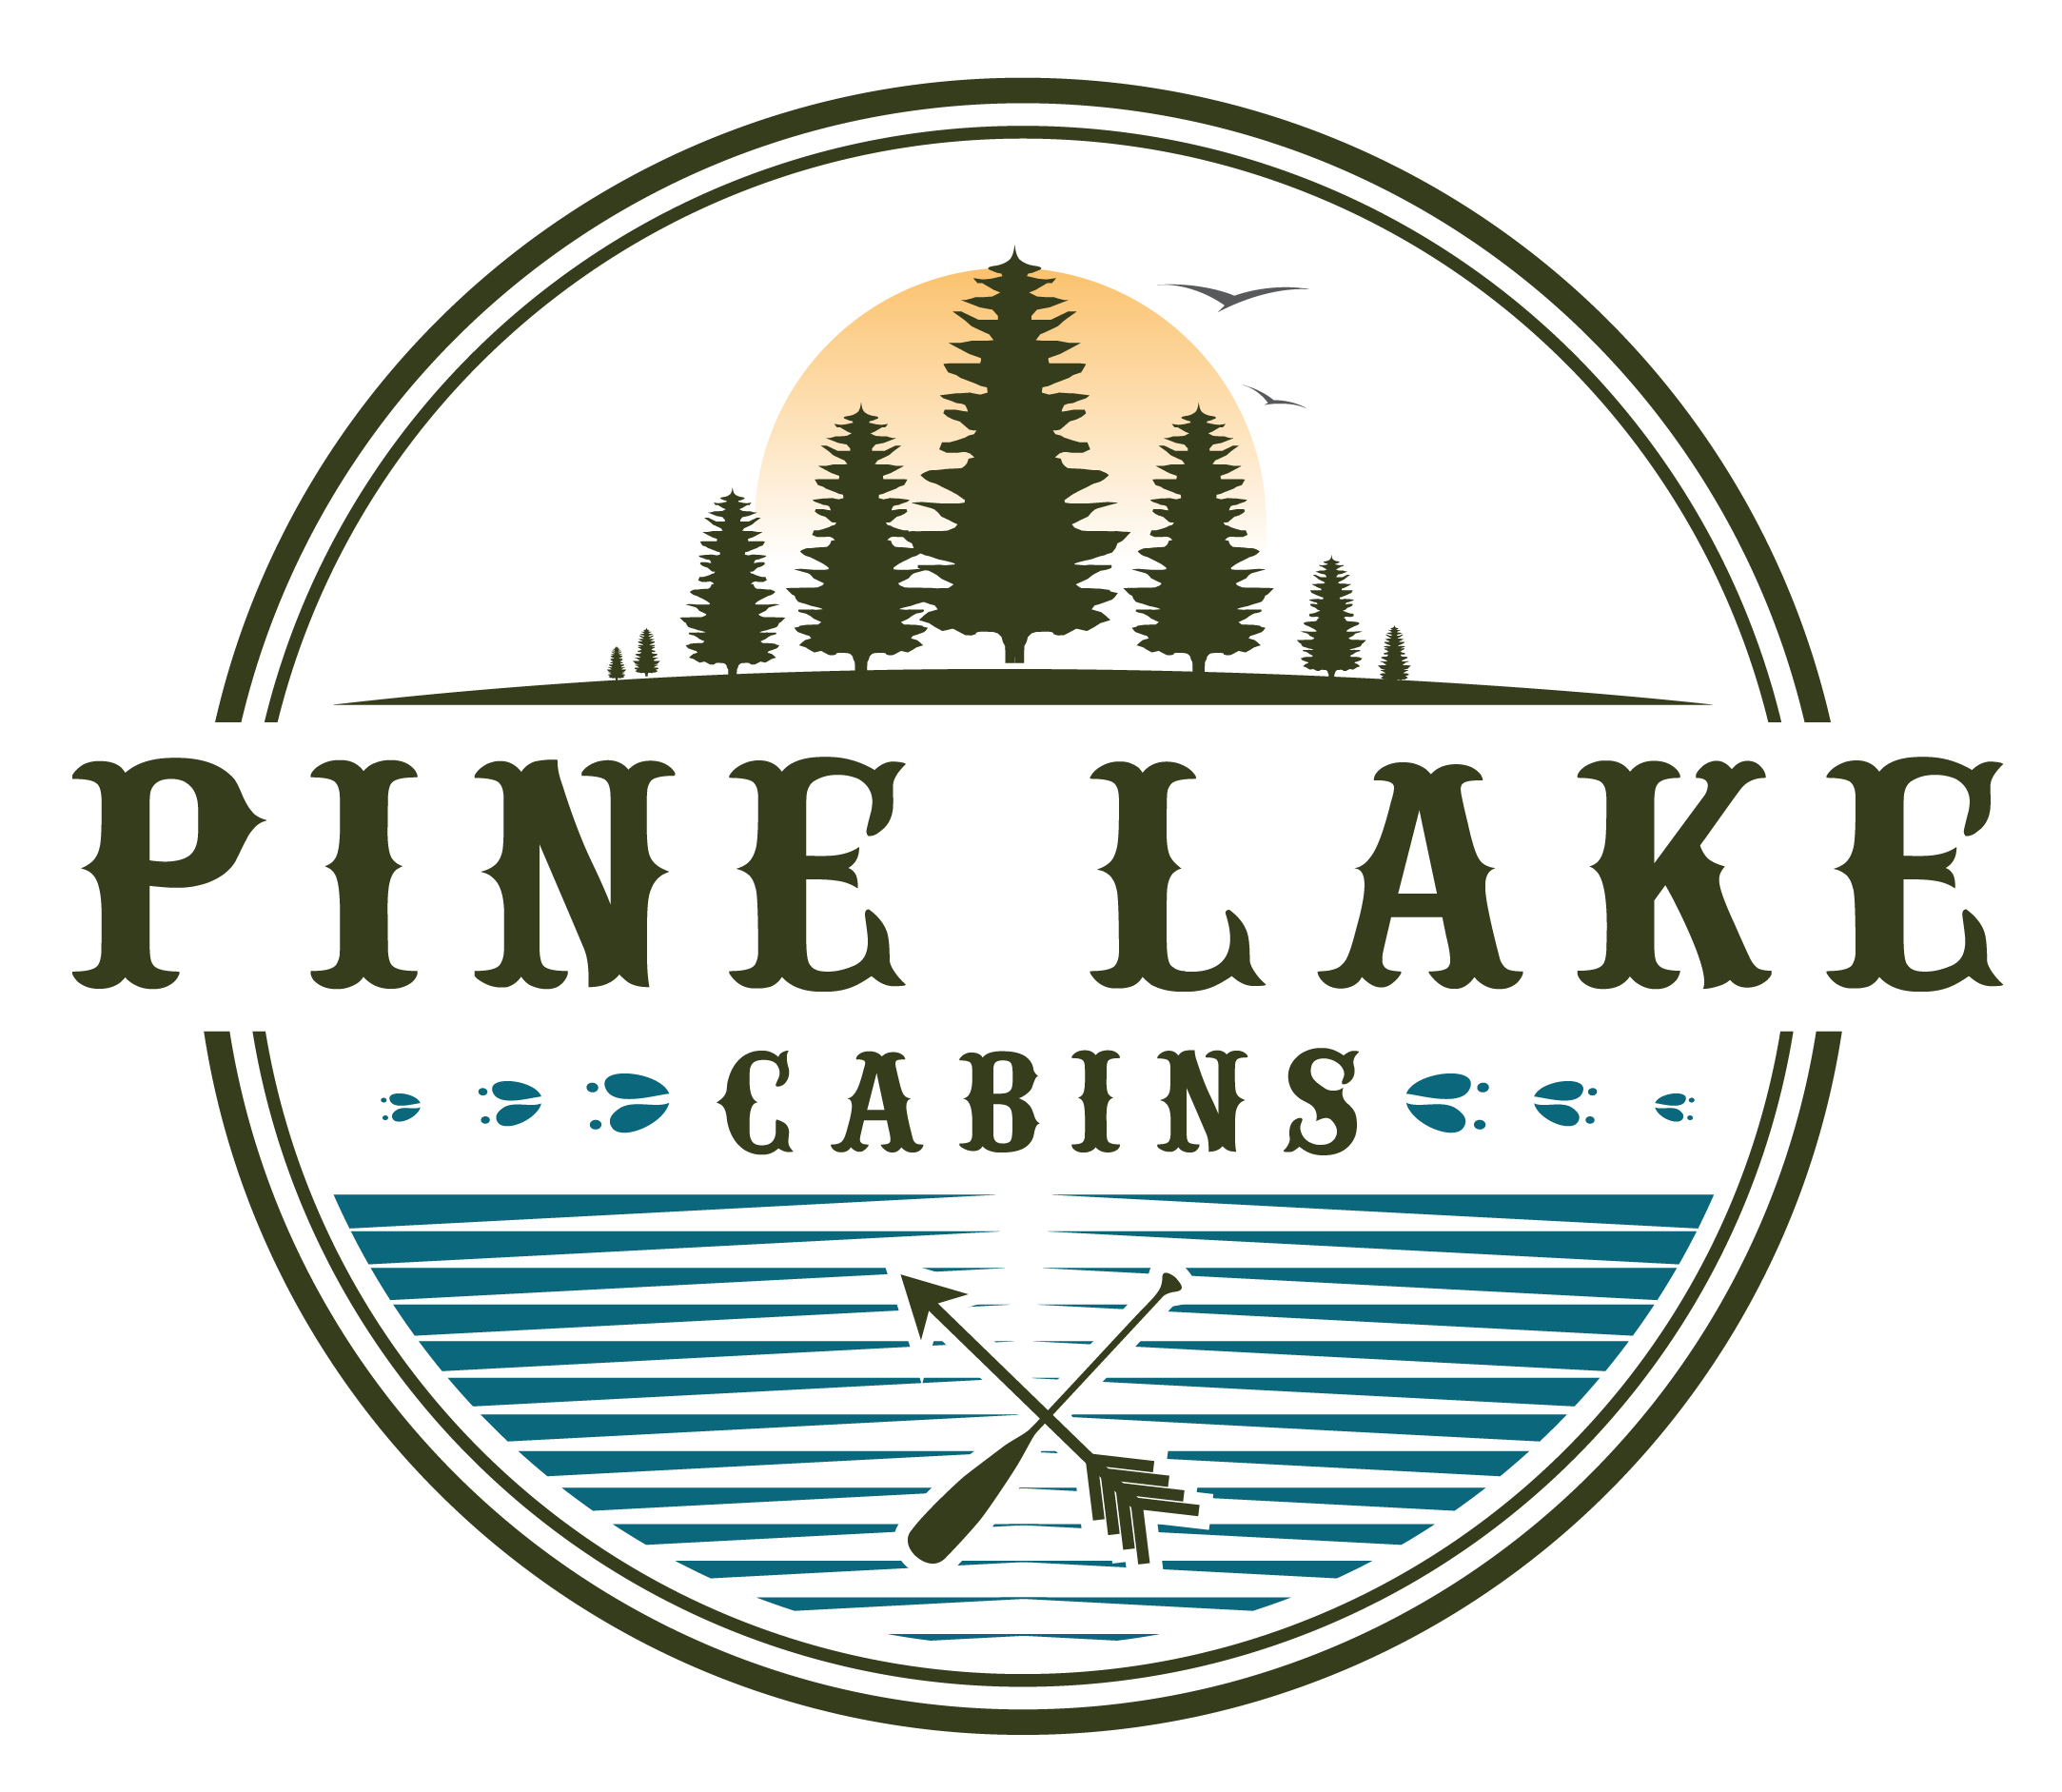 Pine Lake Cabins Logo